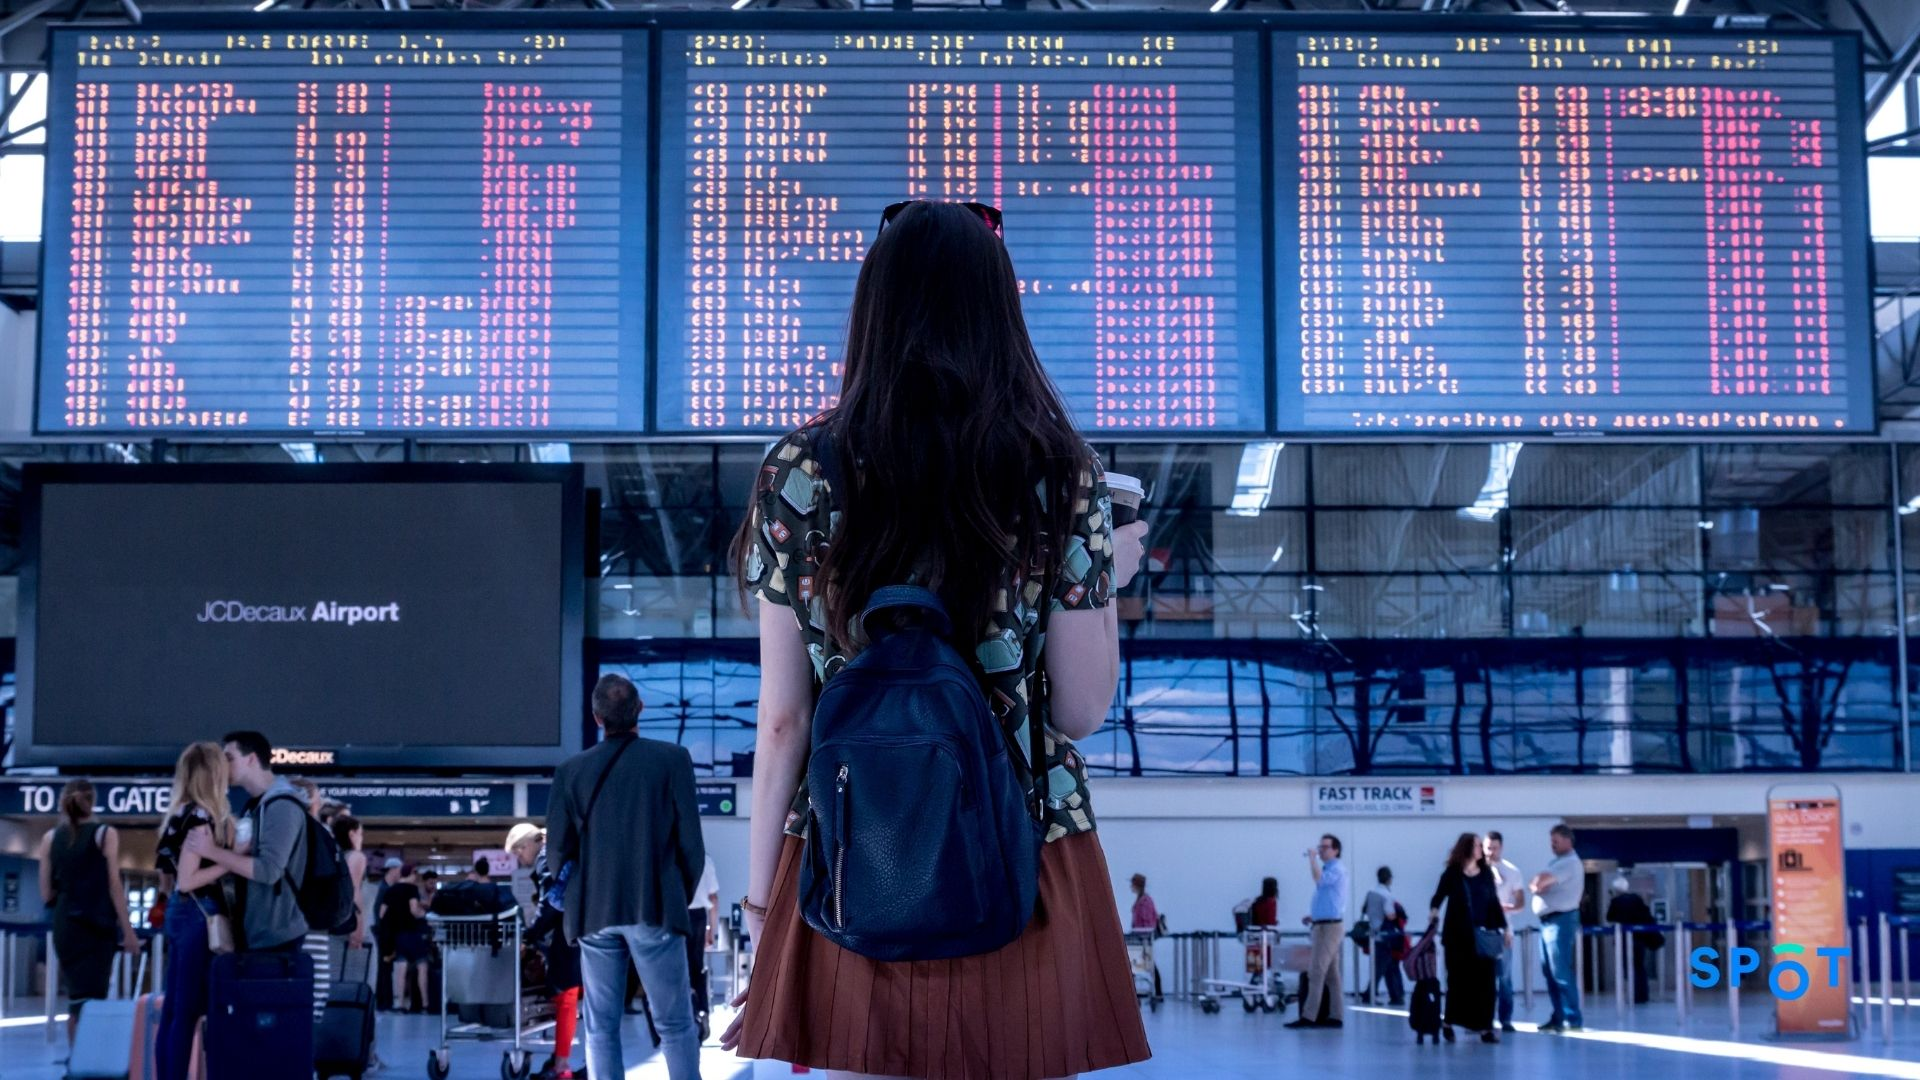 An airport traveler late to her flight to the her inability to find parking at the airport